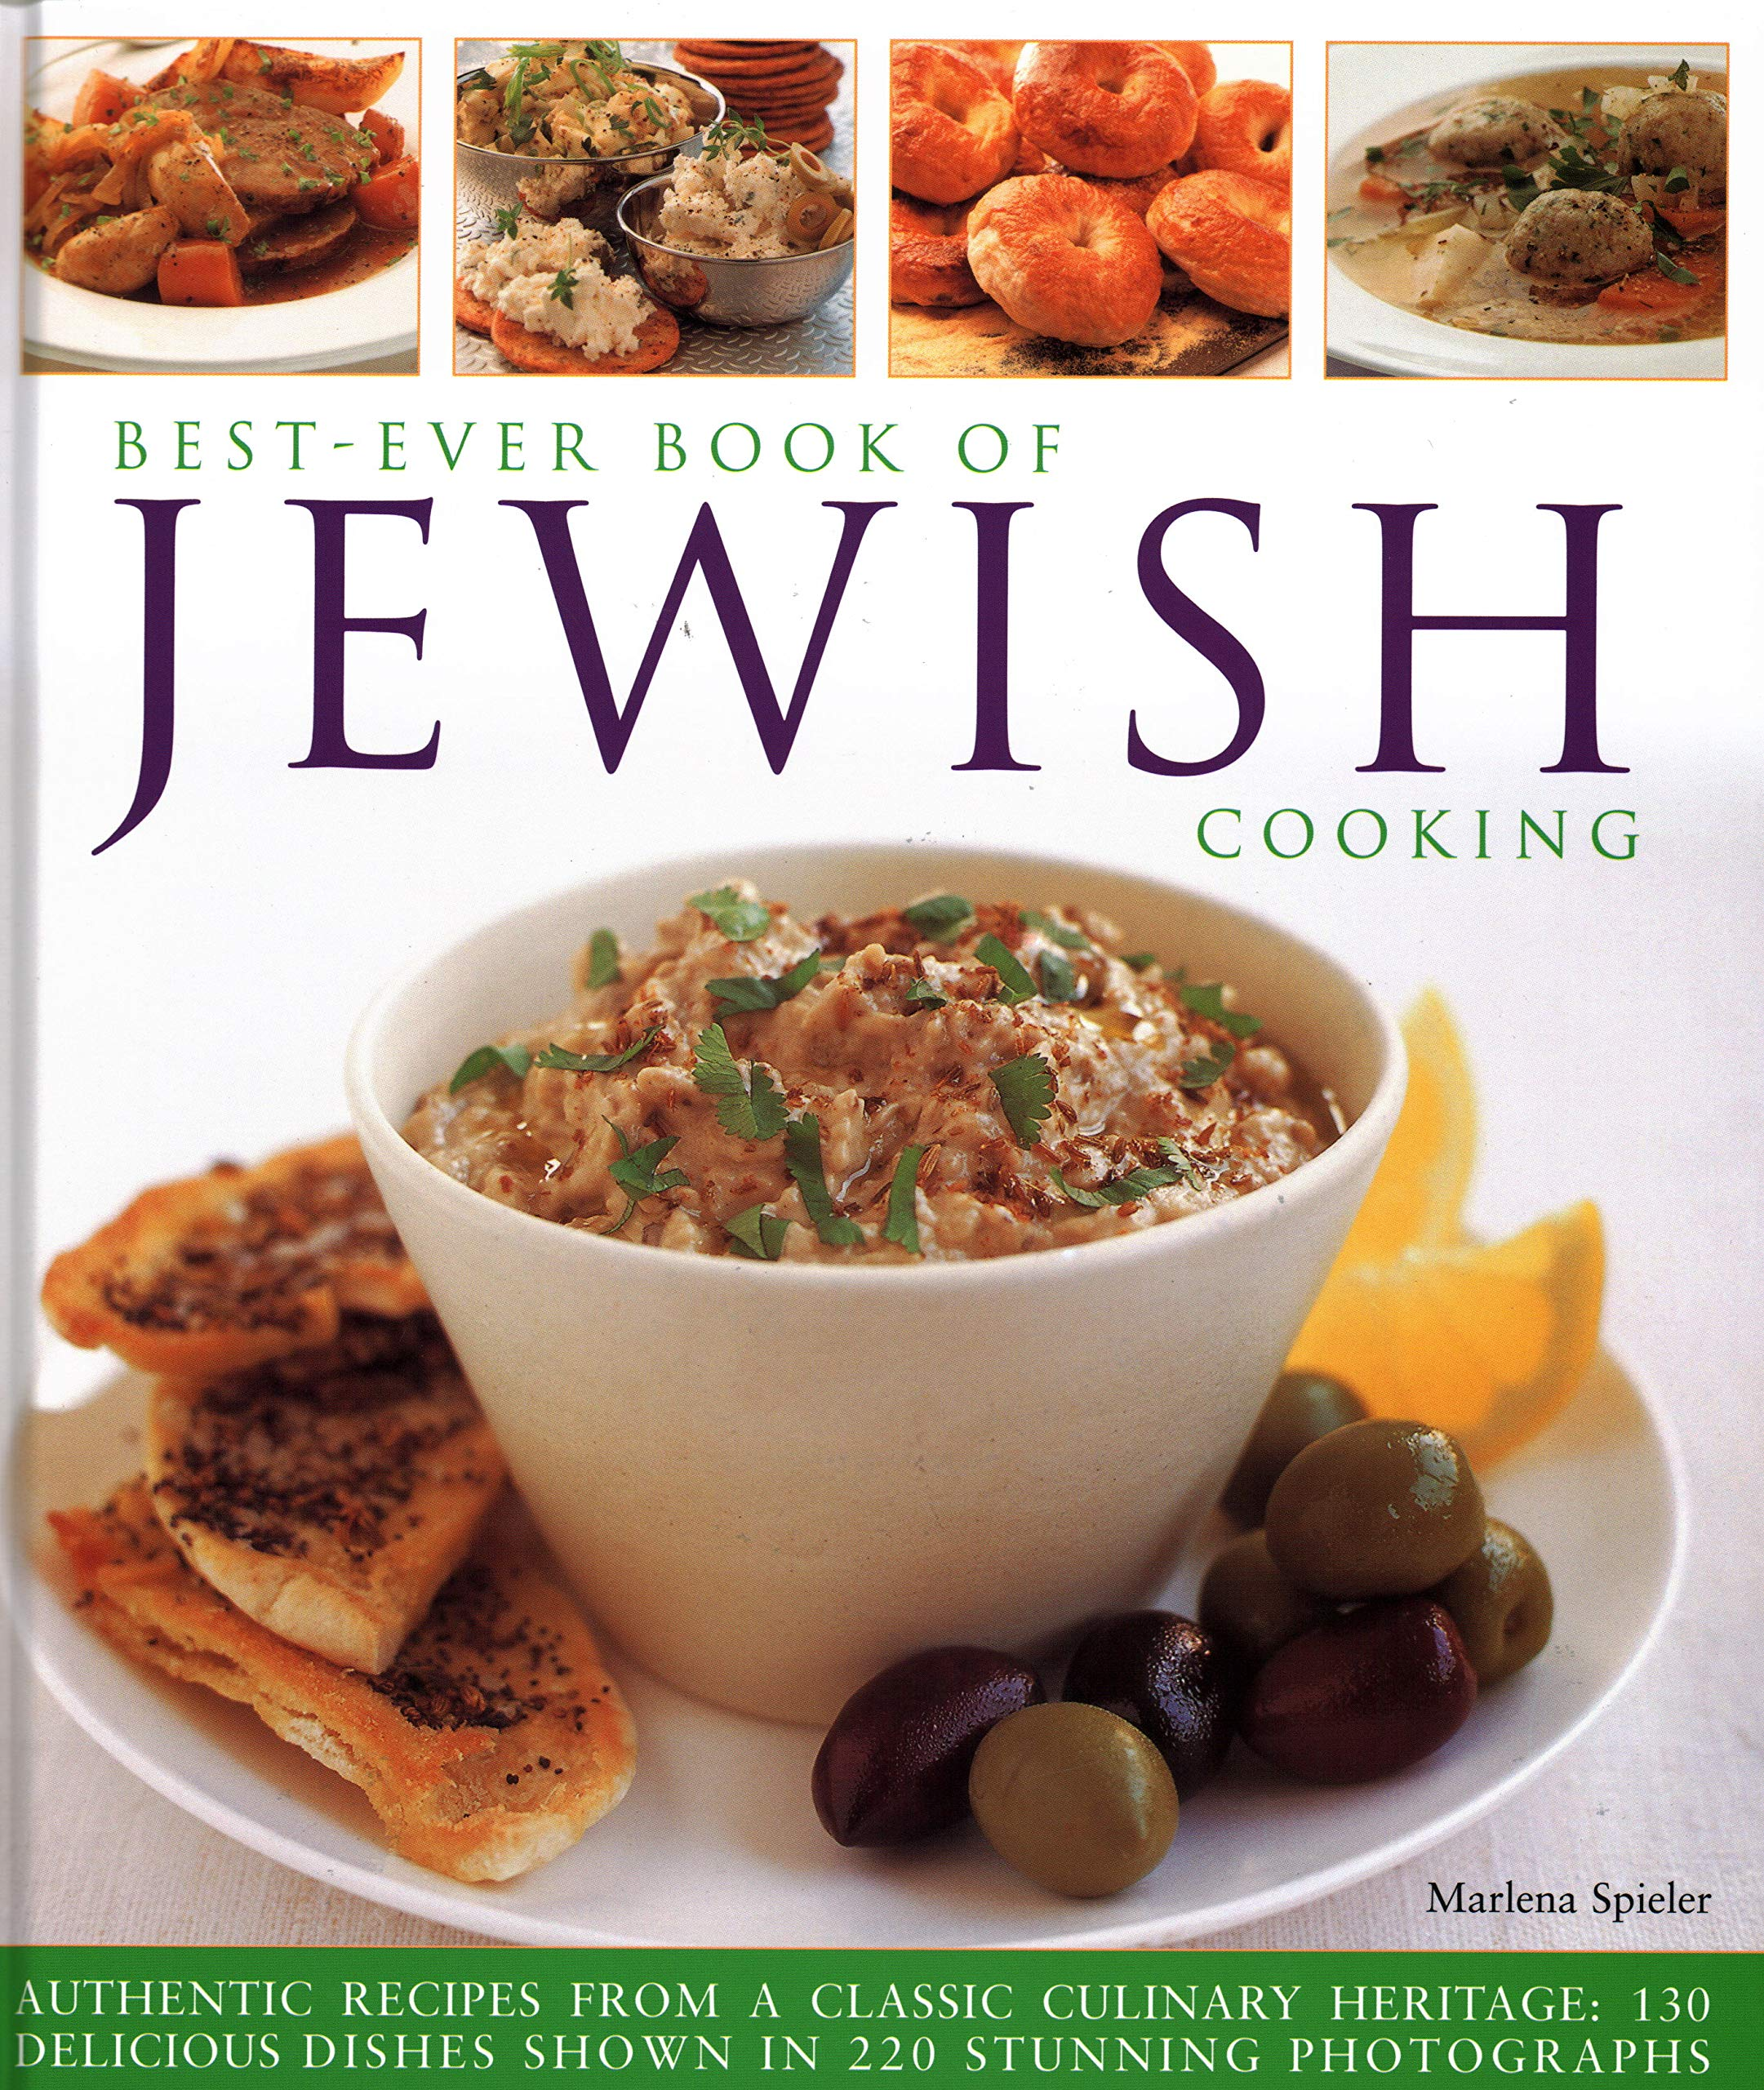 Best-Ever Book of Jewish Cooking: Authentic recipes from a classic